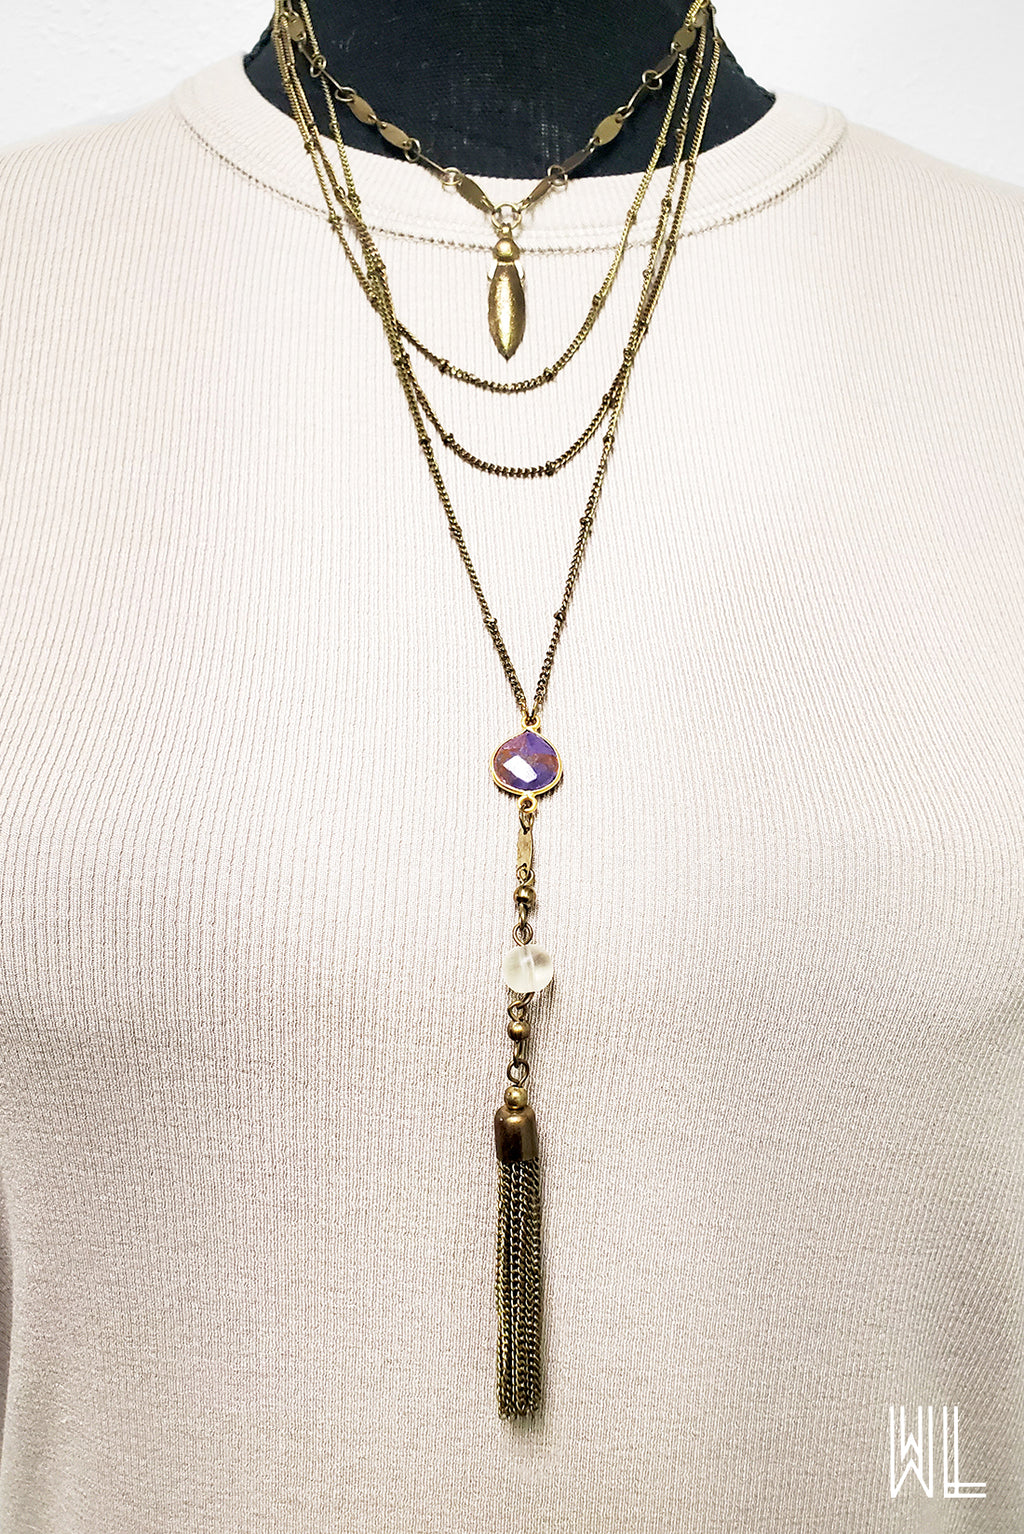 Purple Stone Pendant + Chain Tassels Necklace